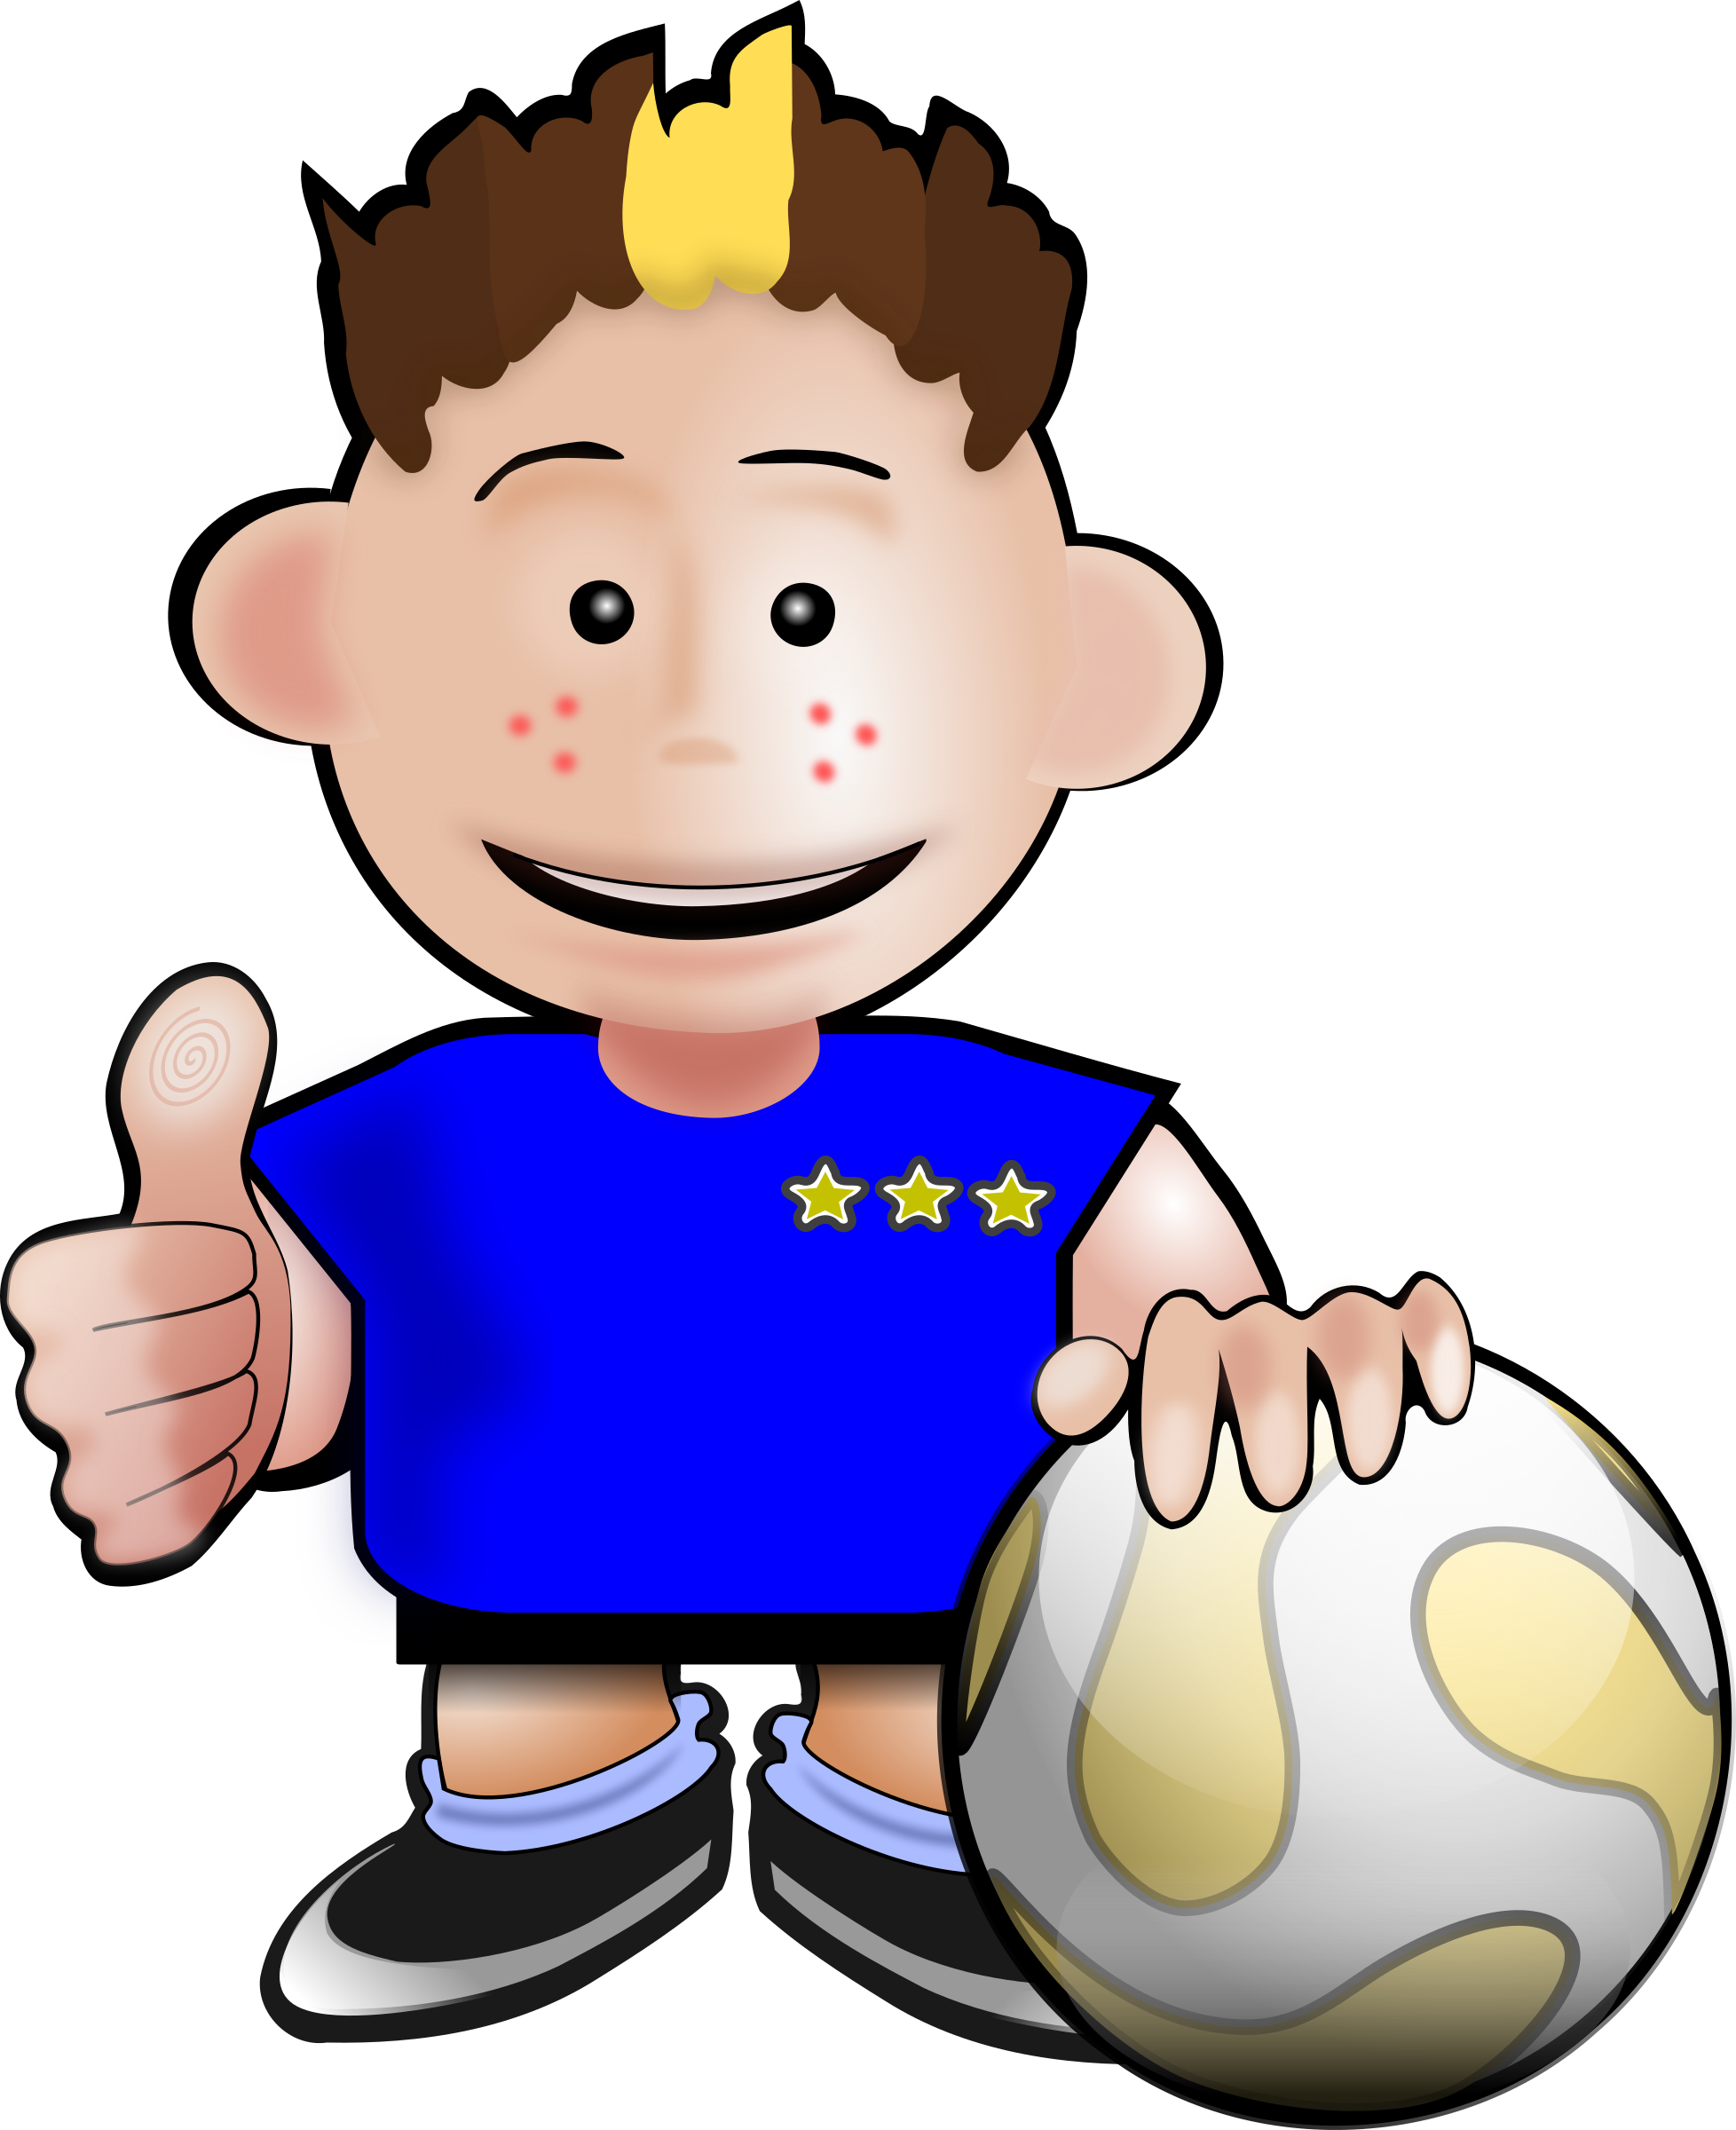 png free download Kids soccer clipart. Toon big image png